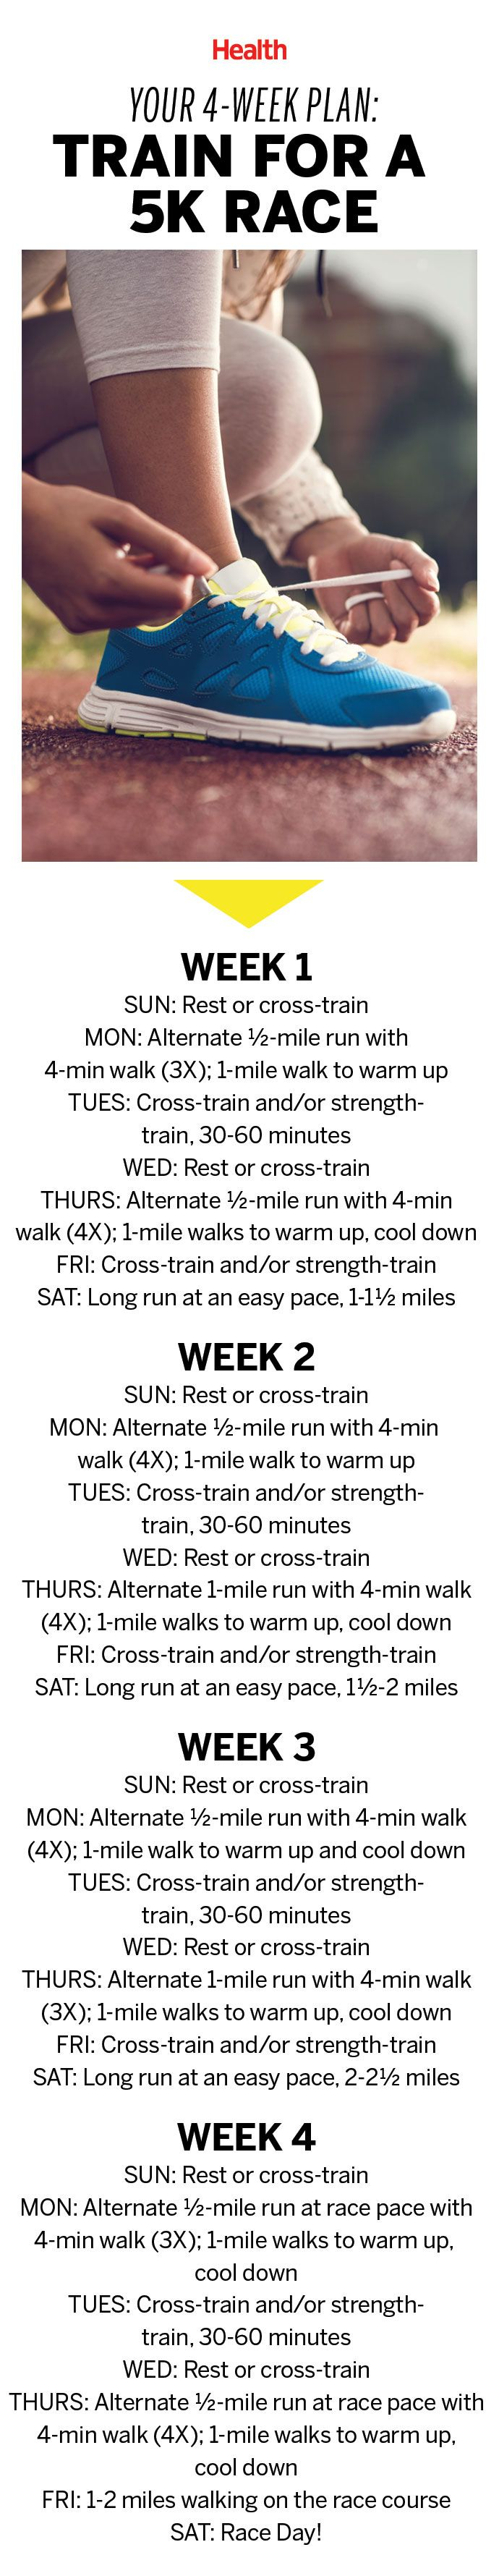 Are you training for a 5K race? Clock those 3.1 miles in no time with this 28-day plan that involves a combination of running, walking, and strength-training. Here's how to train for a 5k in 4 weeks.   Health.com